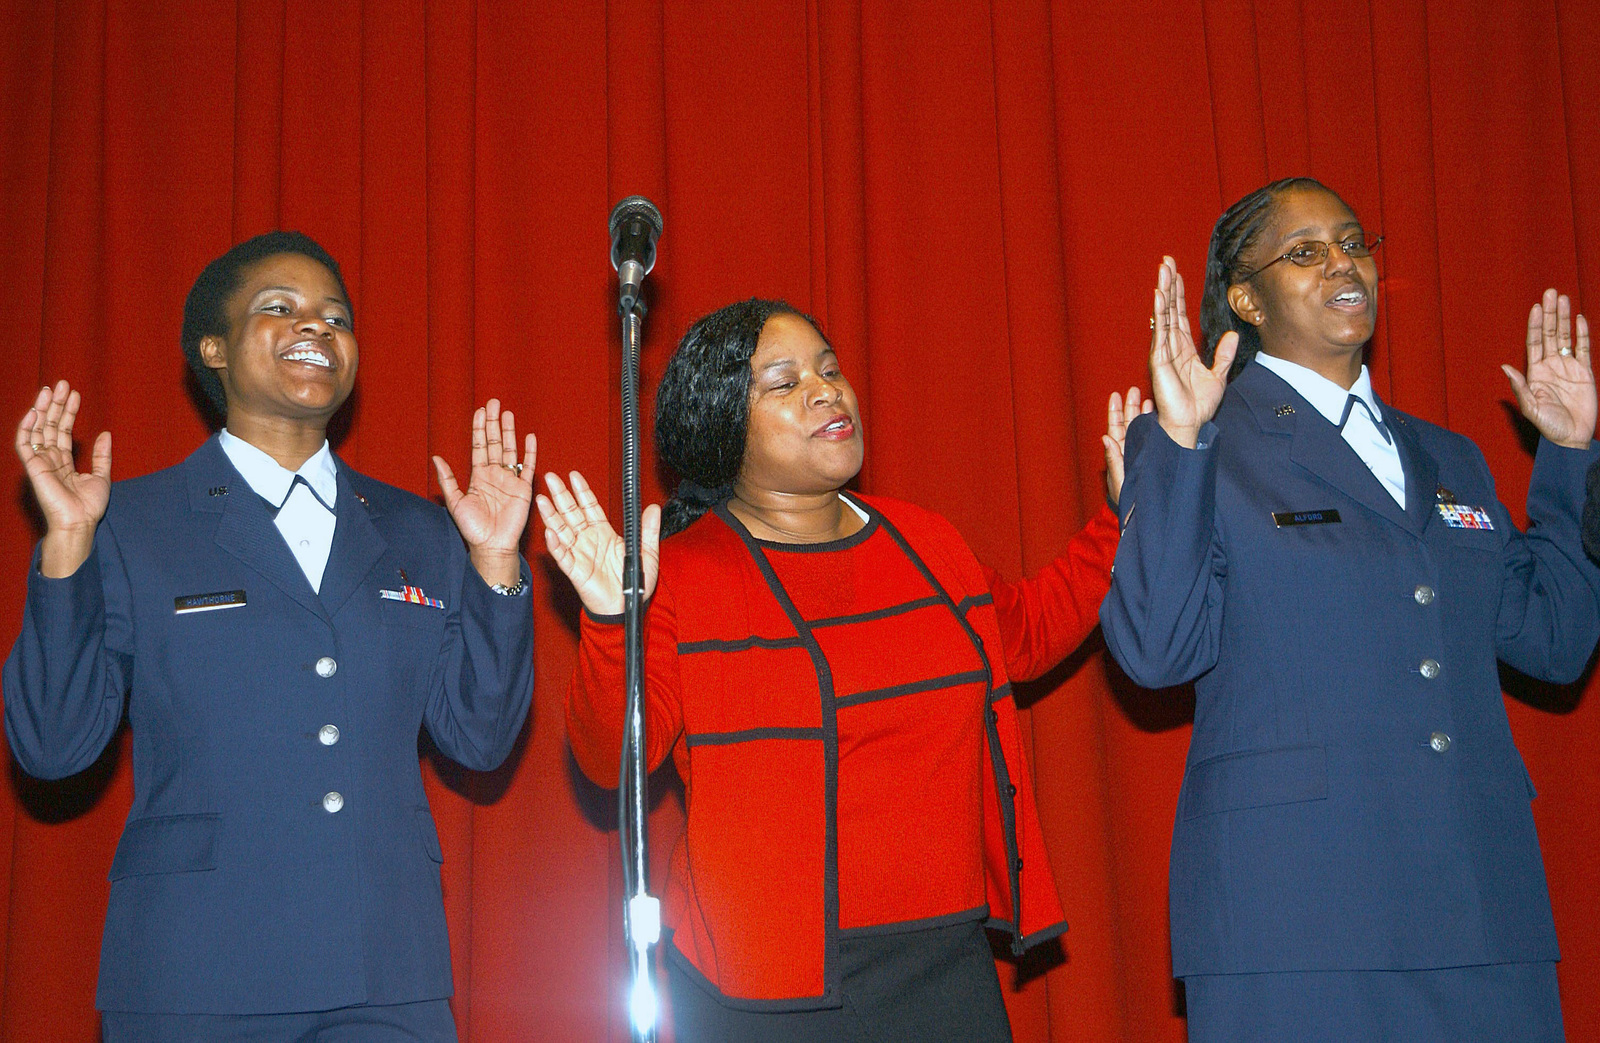 US Air Force (USAF) SENIOR AIRMAN (SRA) Chemika Hawthorn, with the 92nd Medical Group (MG), Civilian Marion Williams and MASTER Sergeant (MSGT) Dannie Alford of the Civil Engineering Squadron (CES), at Fairchild Air Force Base (AFB), Washington (WA), perform in a gospel choir at a luncheon honoring the late Dr. Martin Luther King, Jr